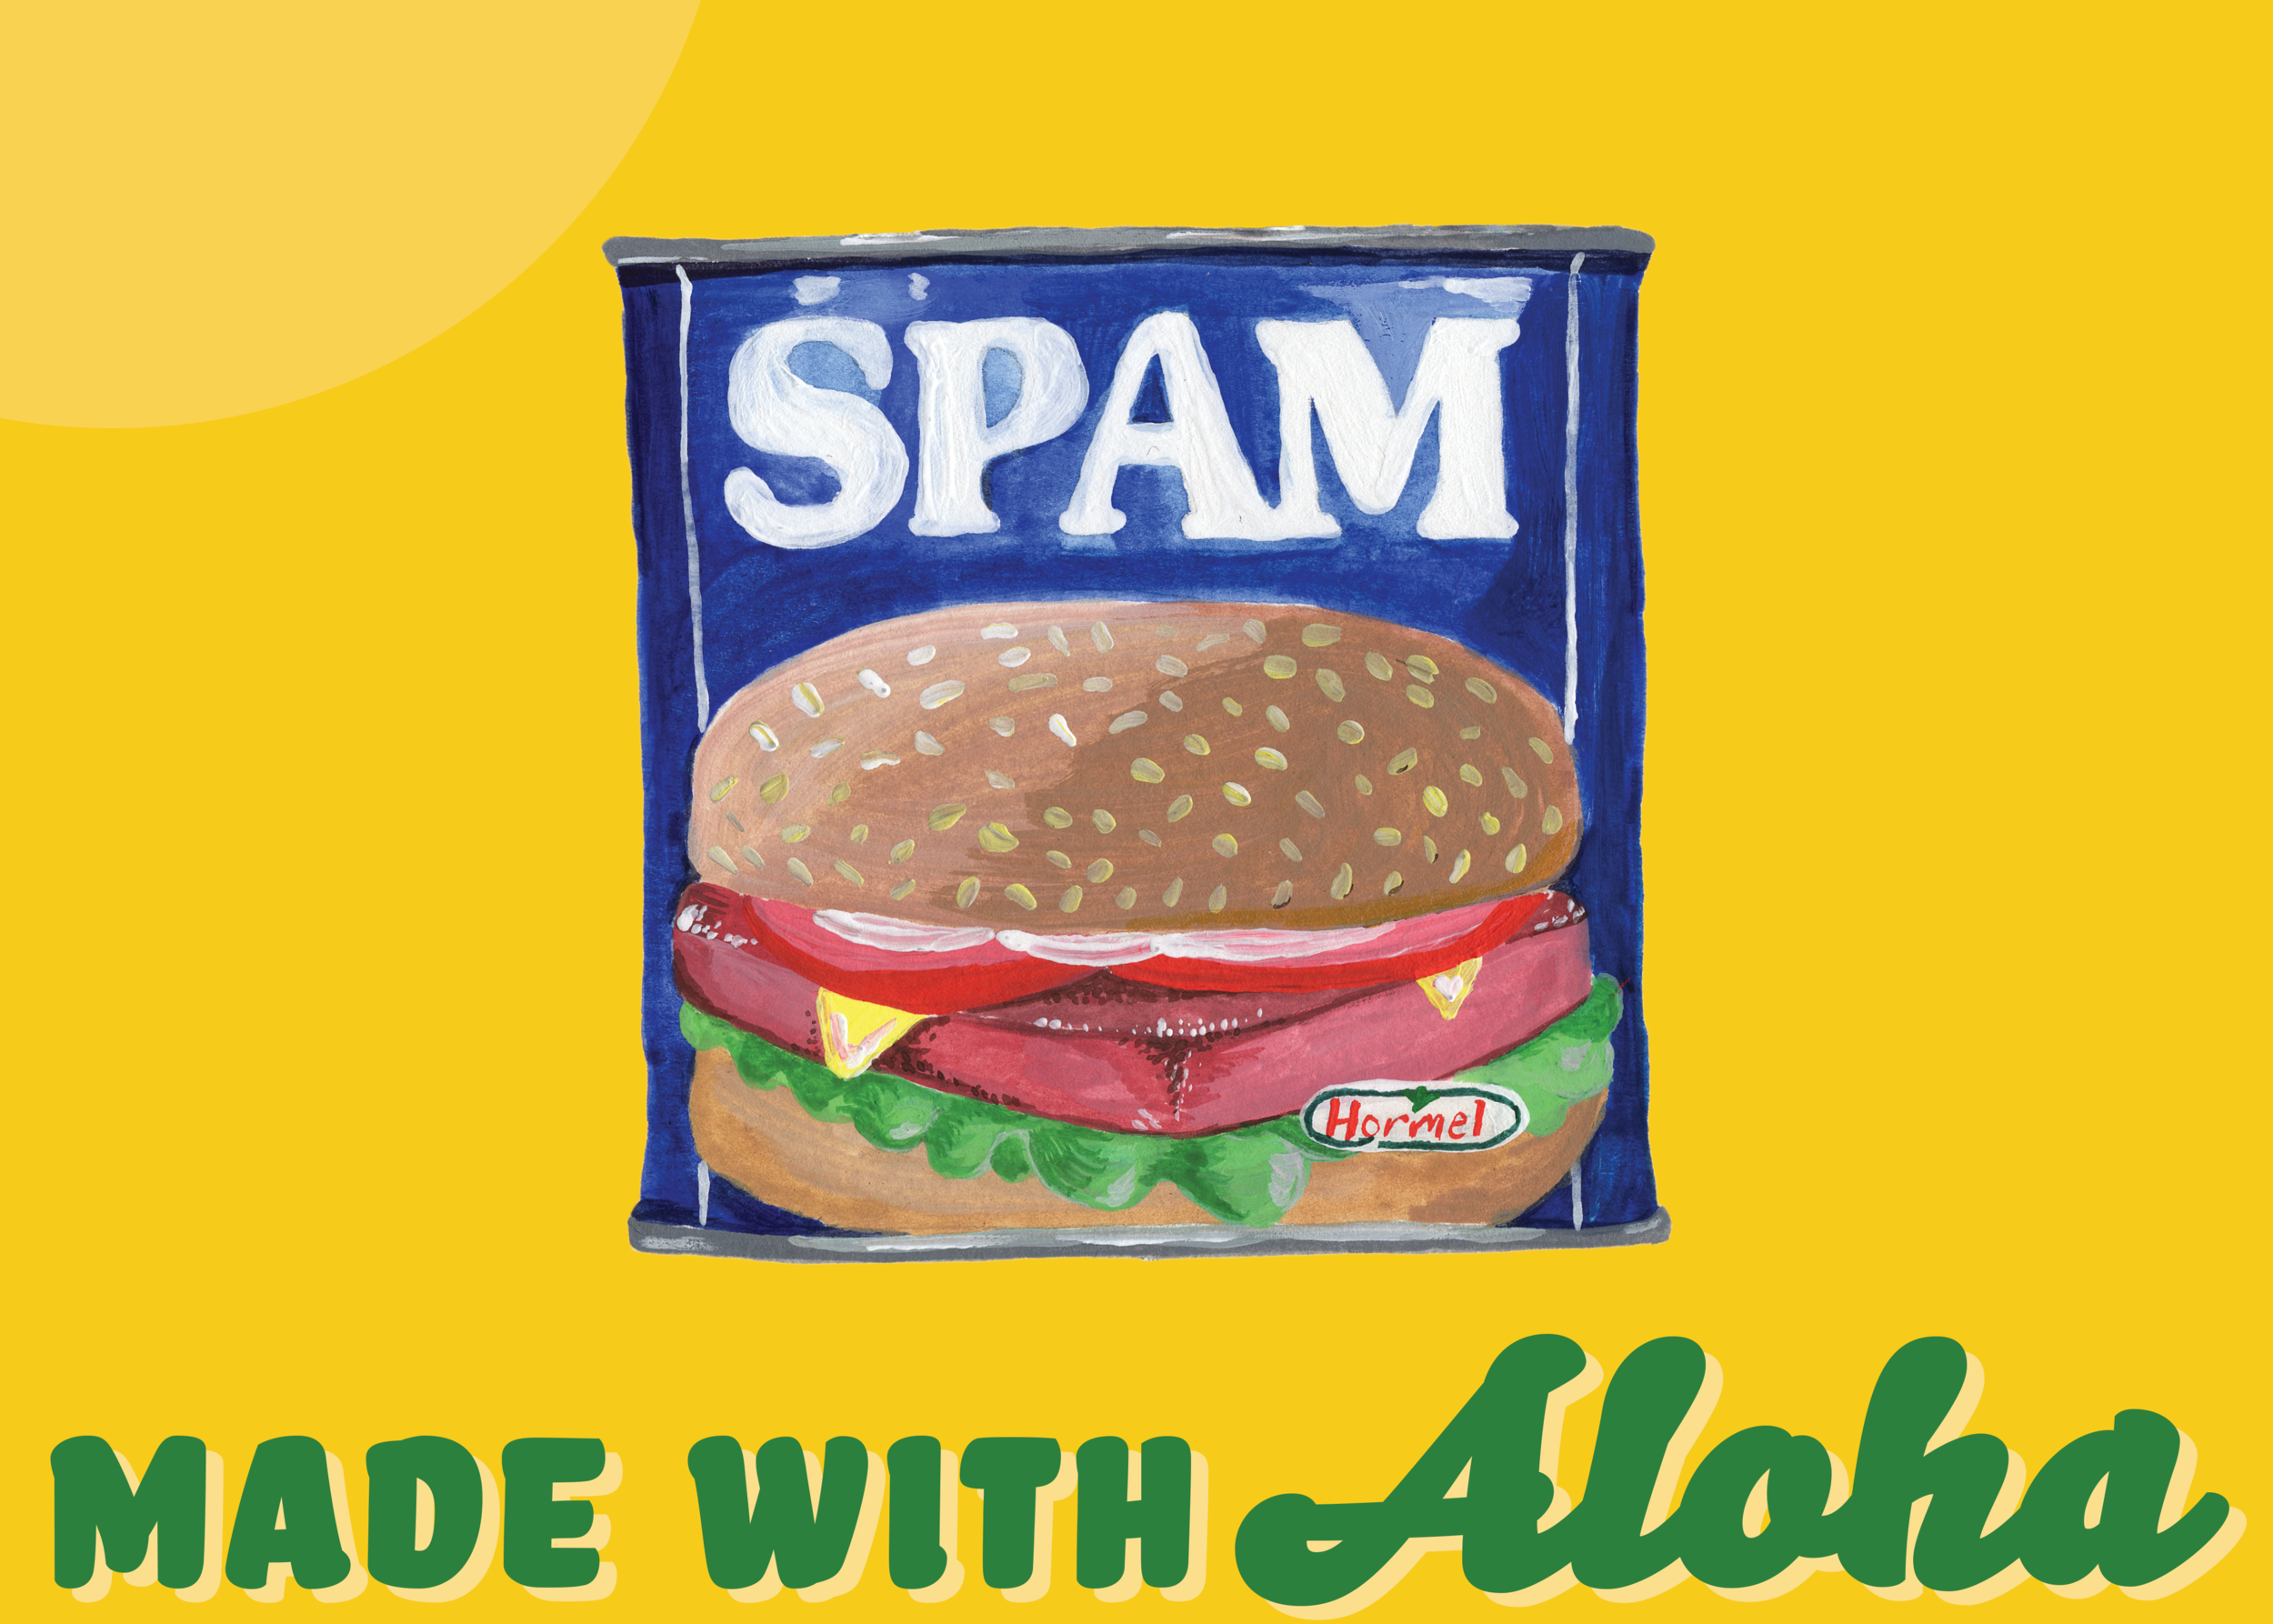 Test Illustration of Spam. This image was hand painted in gouache then digitally composited in Photoshop.